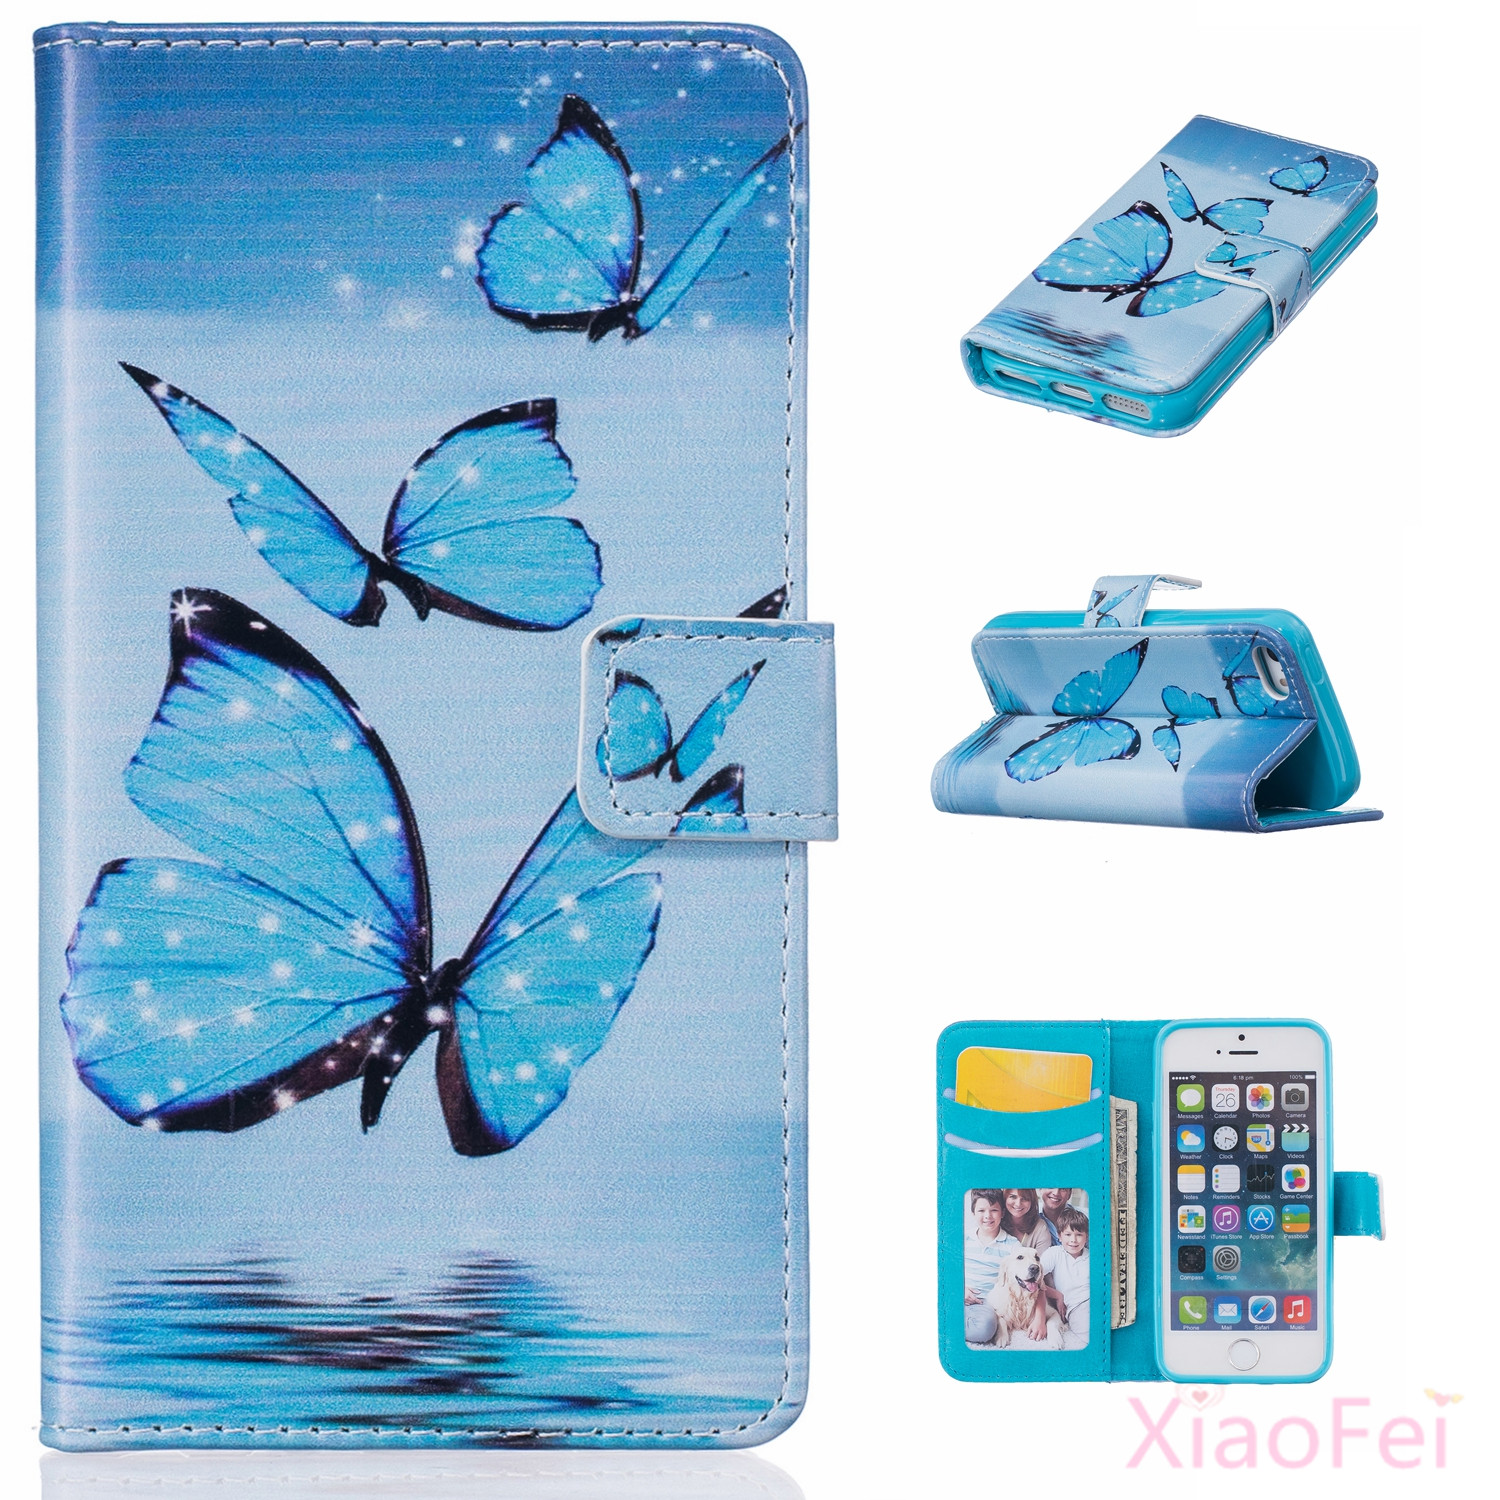 New Arrival Hot Sale Wallet PU Leather For iPhone 5 & 5S For iPhone SE Flip Cover Bag Flip With Stand Cove Cases with Card Slots